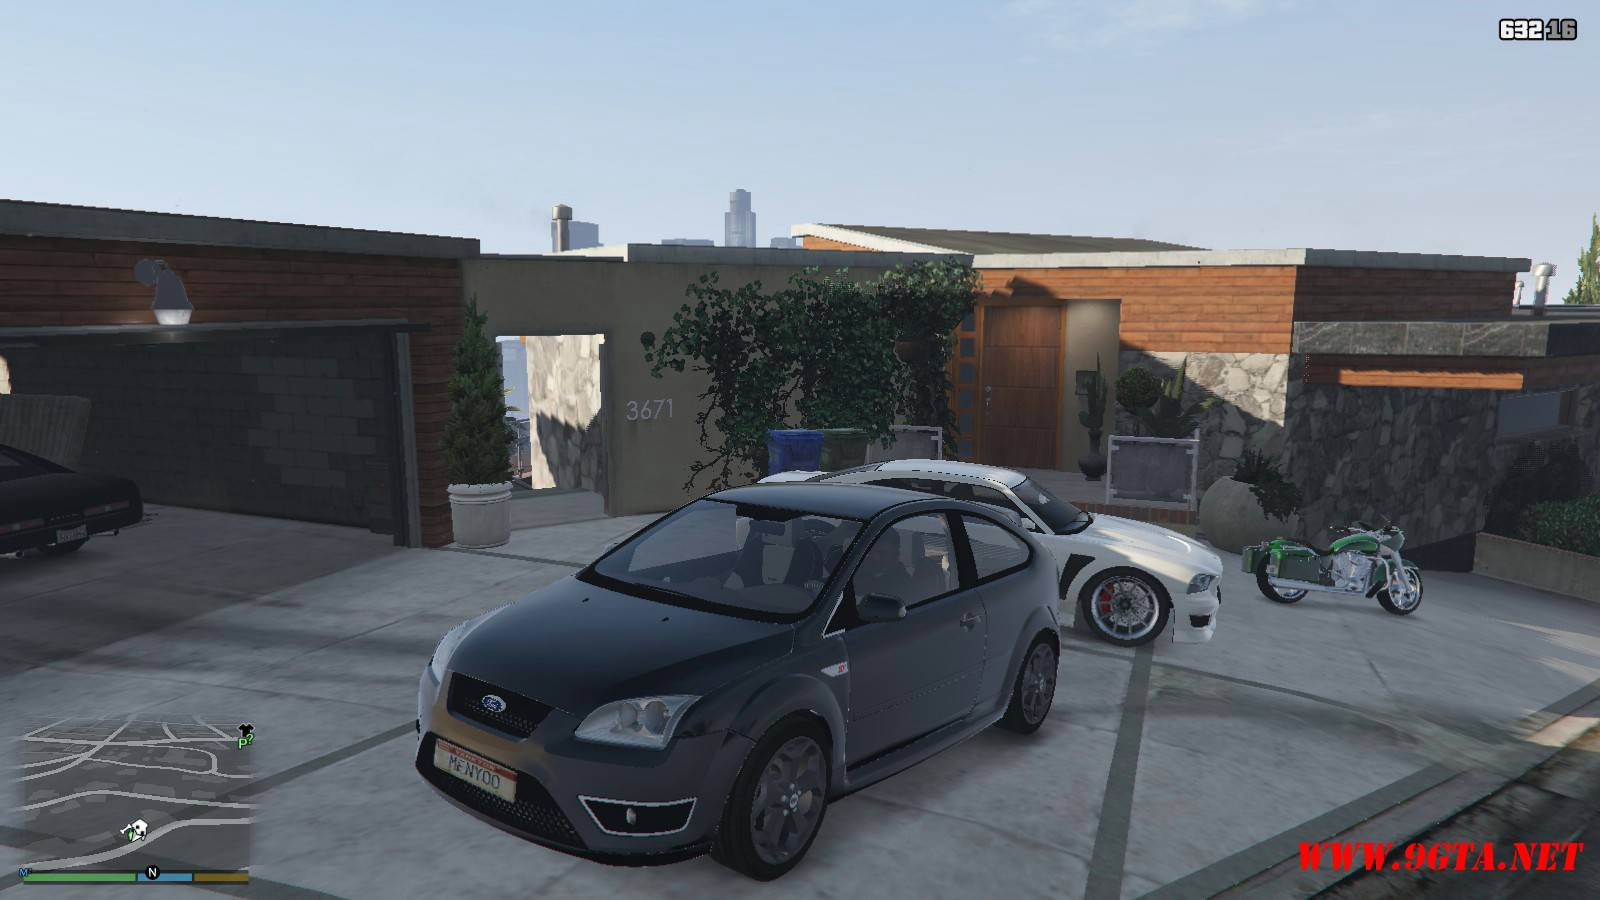 2006 Ford Focus ST Mod For GTA5 (1)